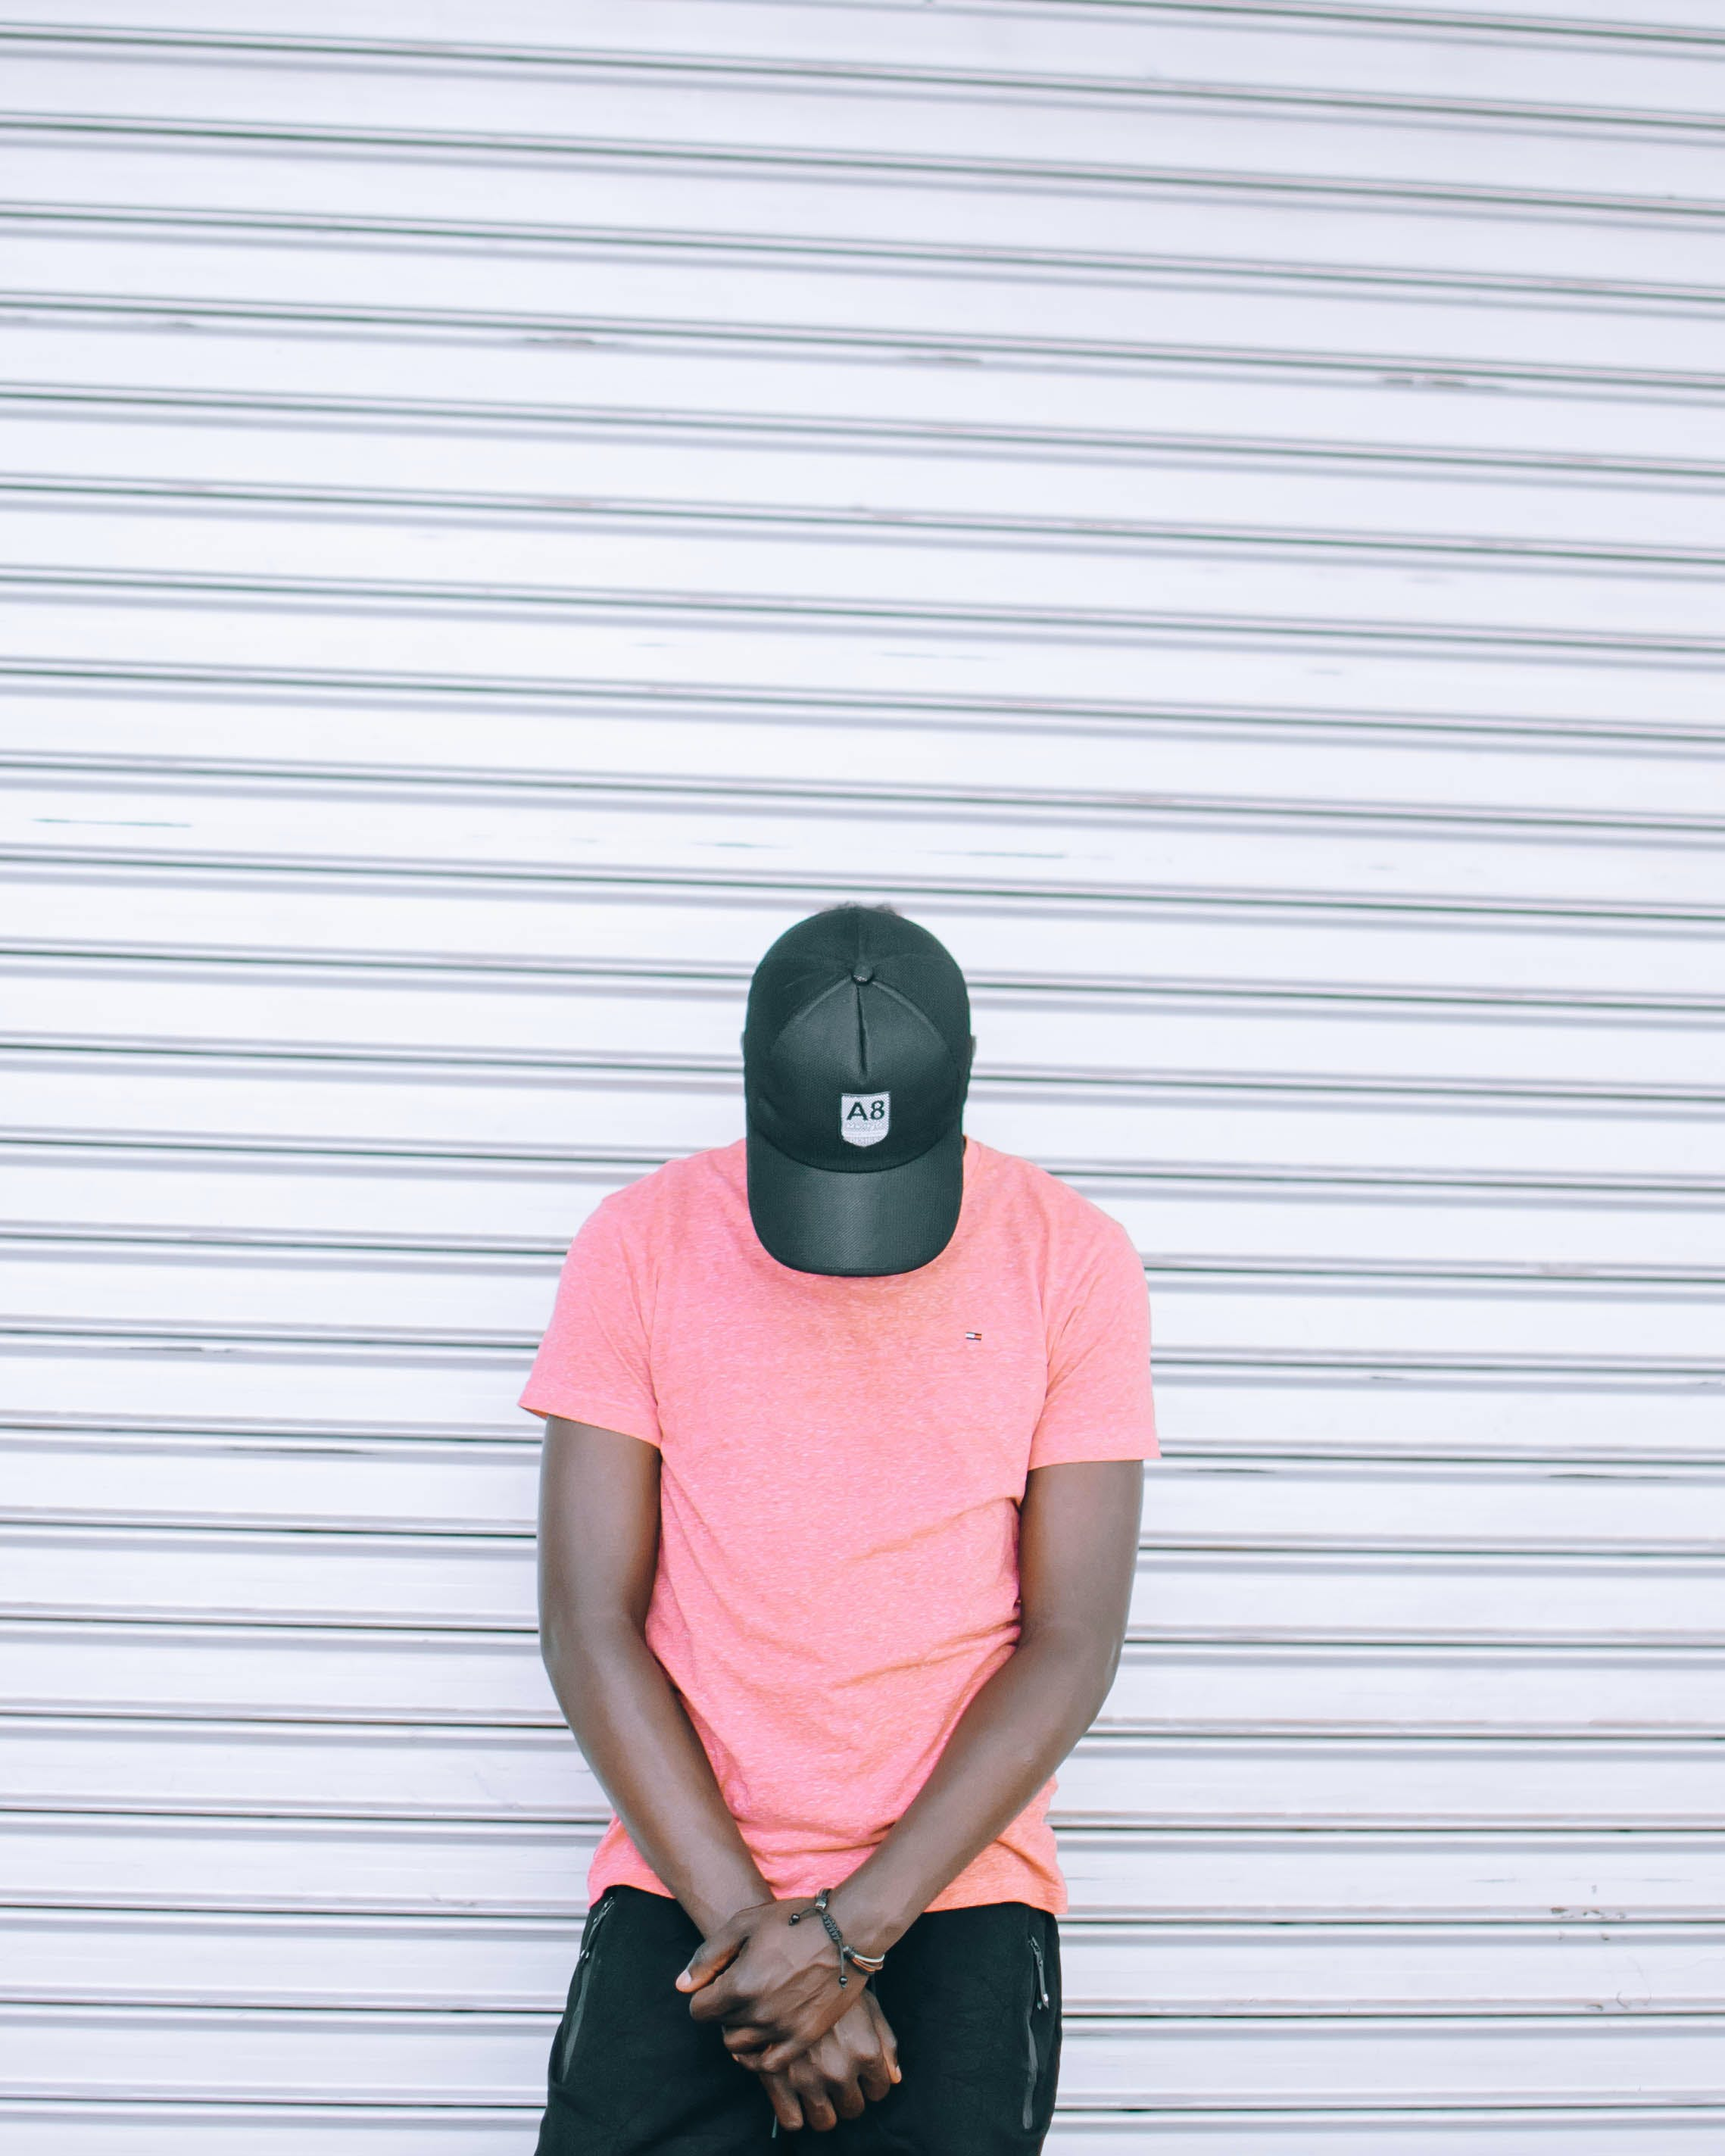 Man Wearing Pink Tee Shirt Leaning on Wall While Head Down